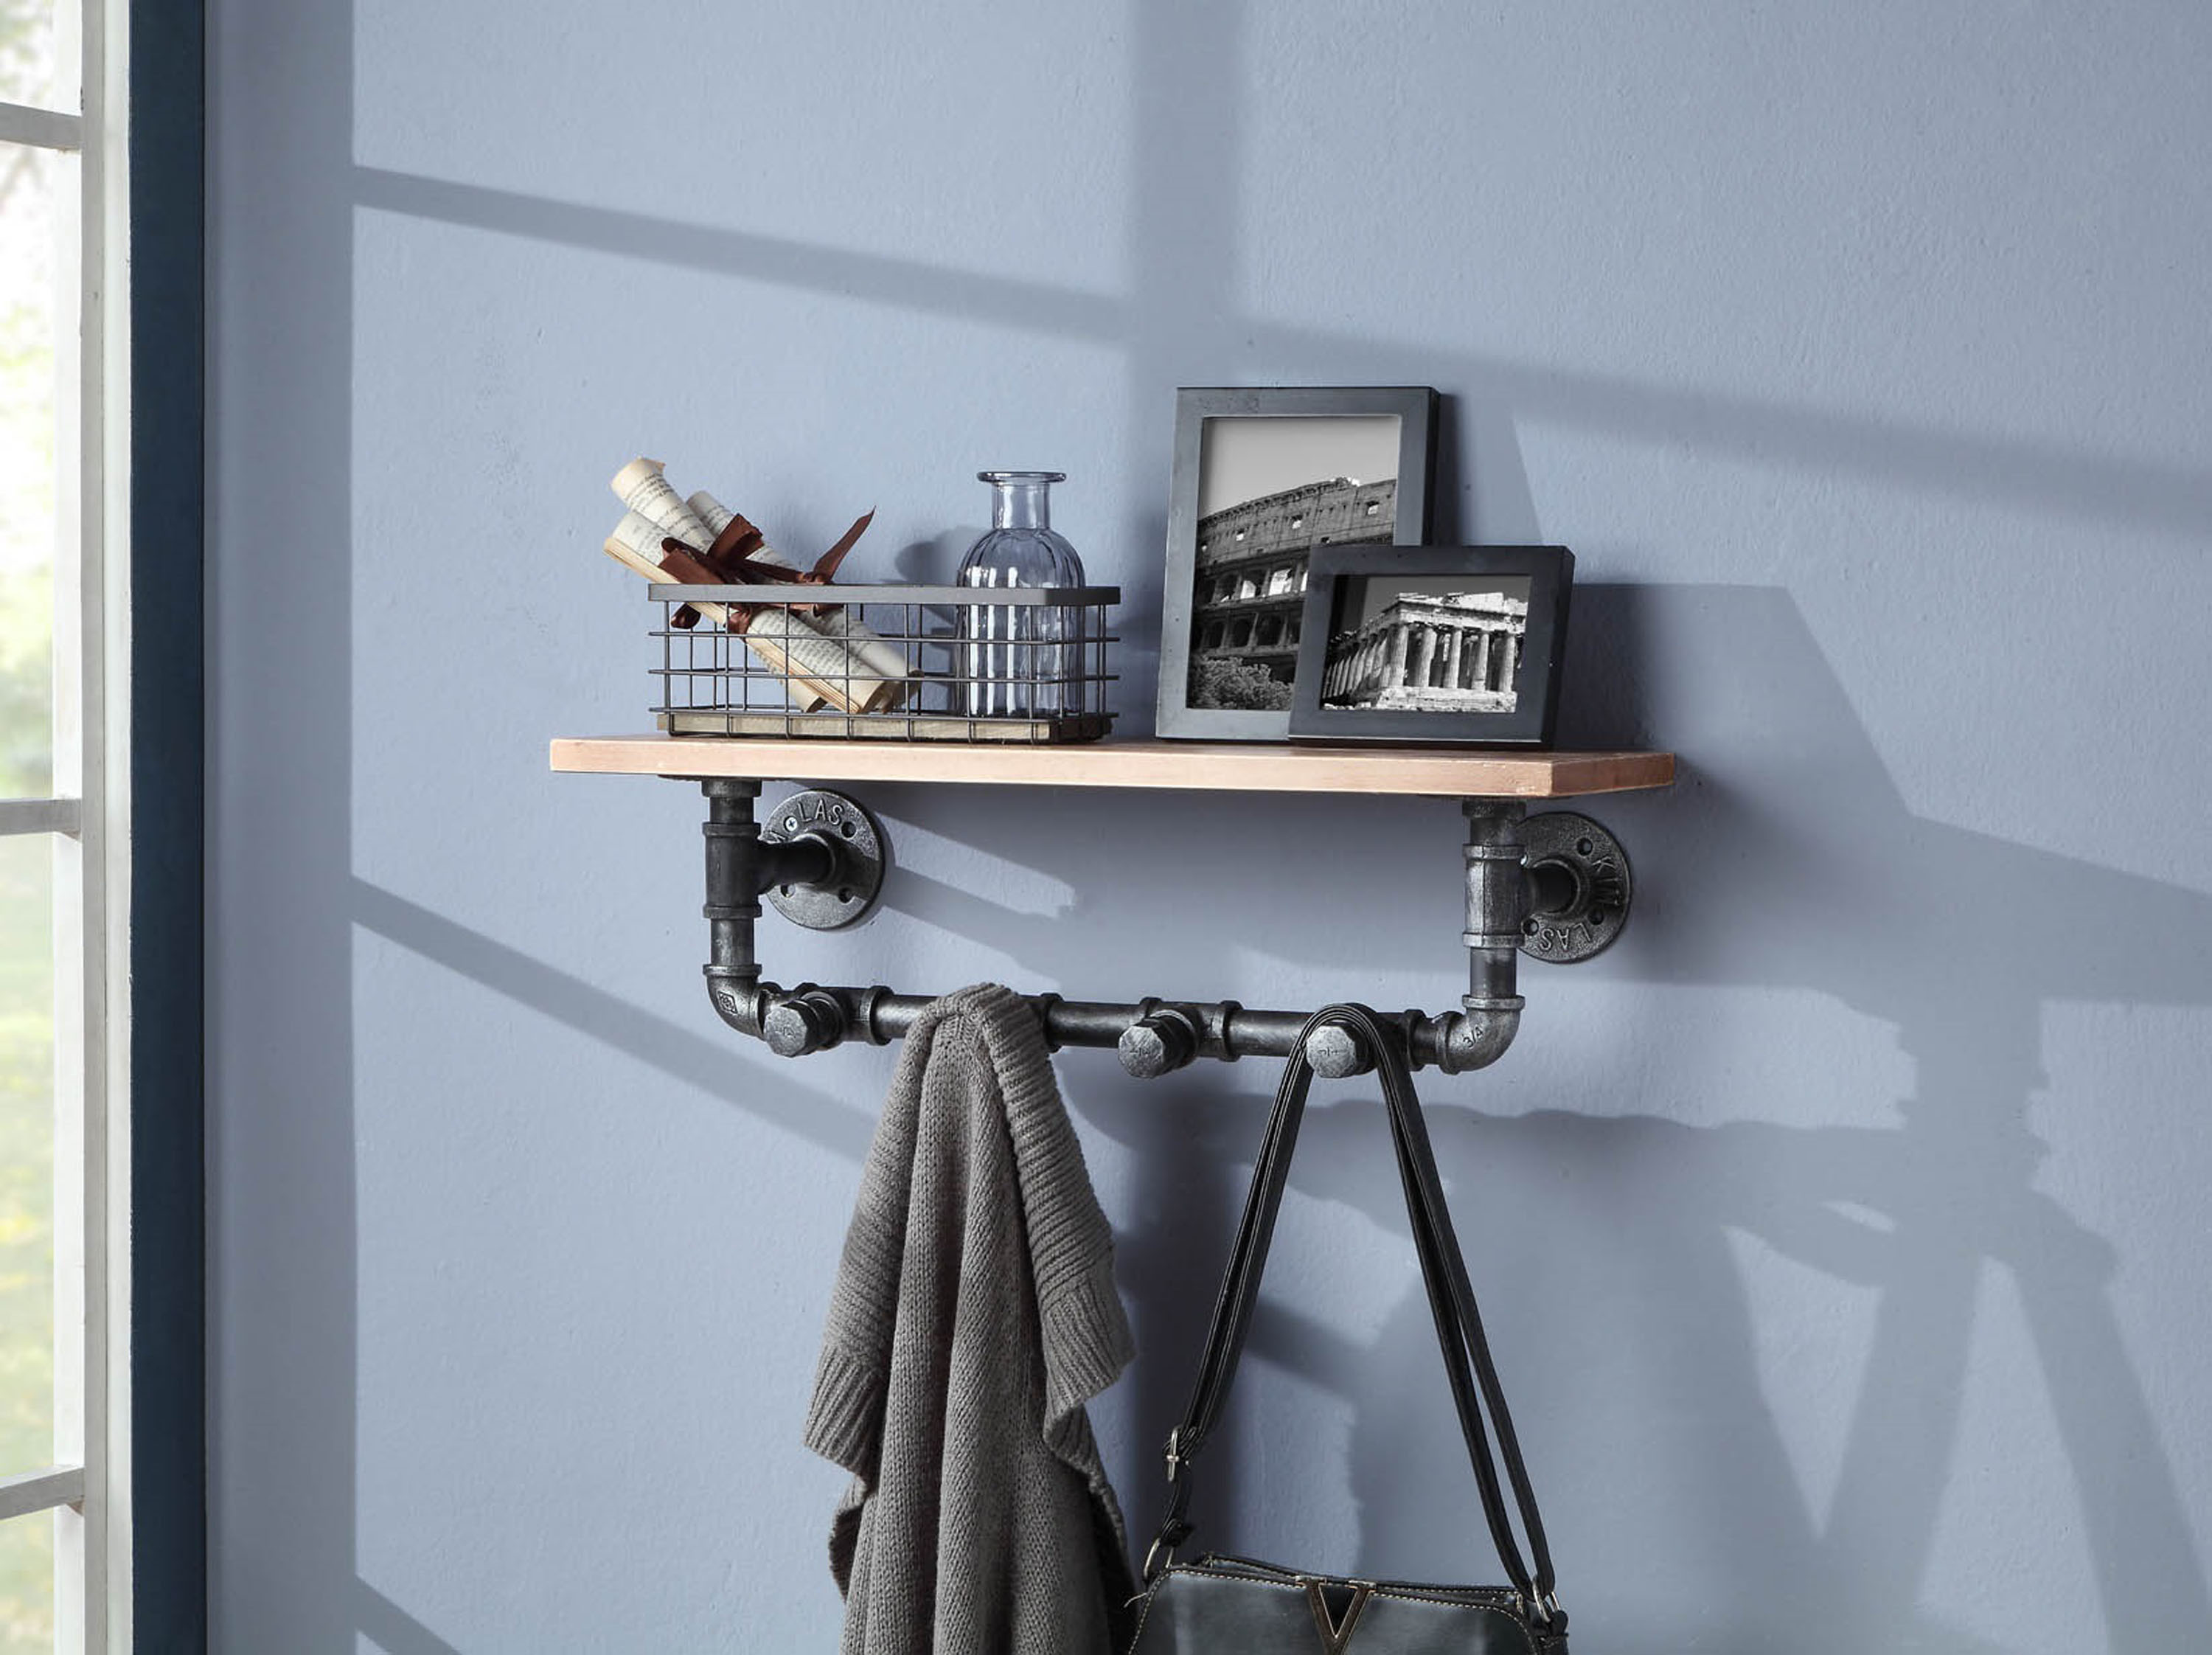 4D Concepts 624016 Allentown Shelf Piping with Clothes Hooks - Black Pipe with Brown Shelve